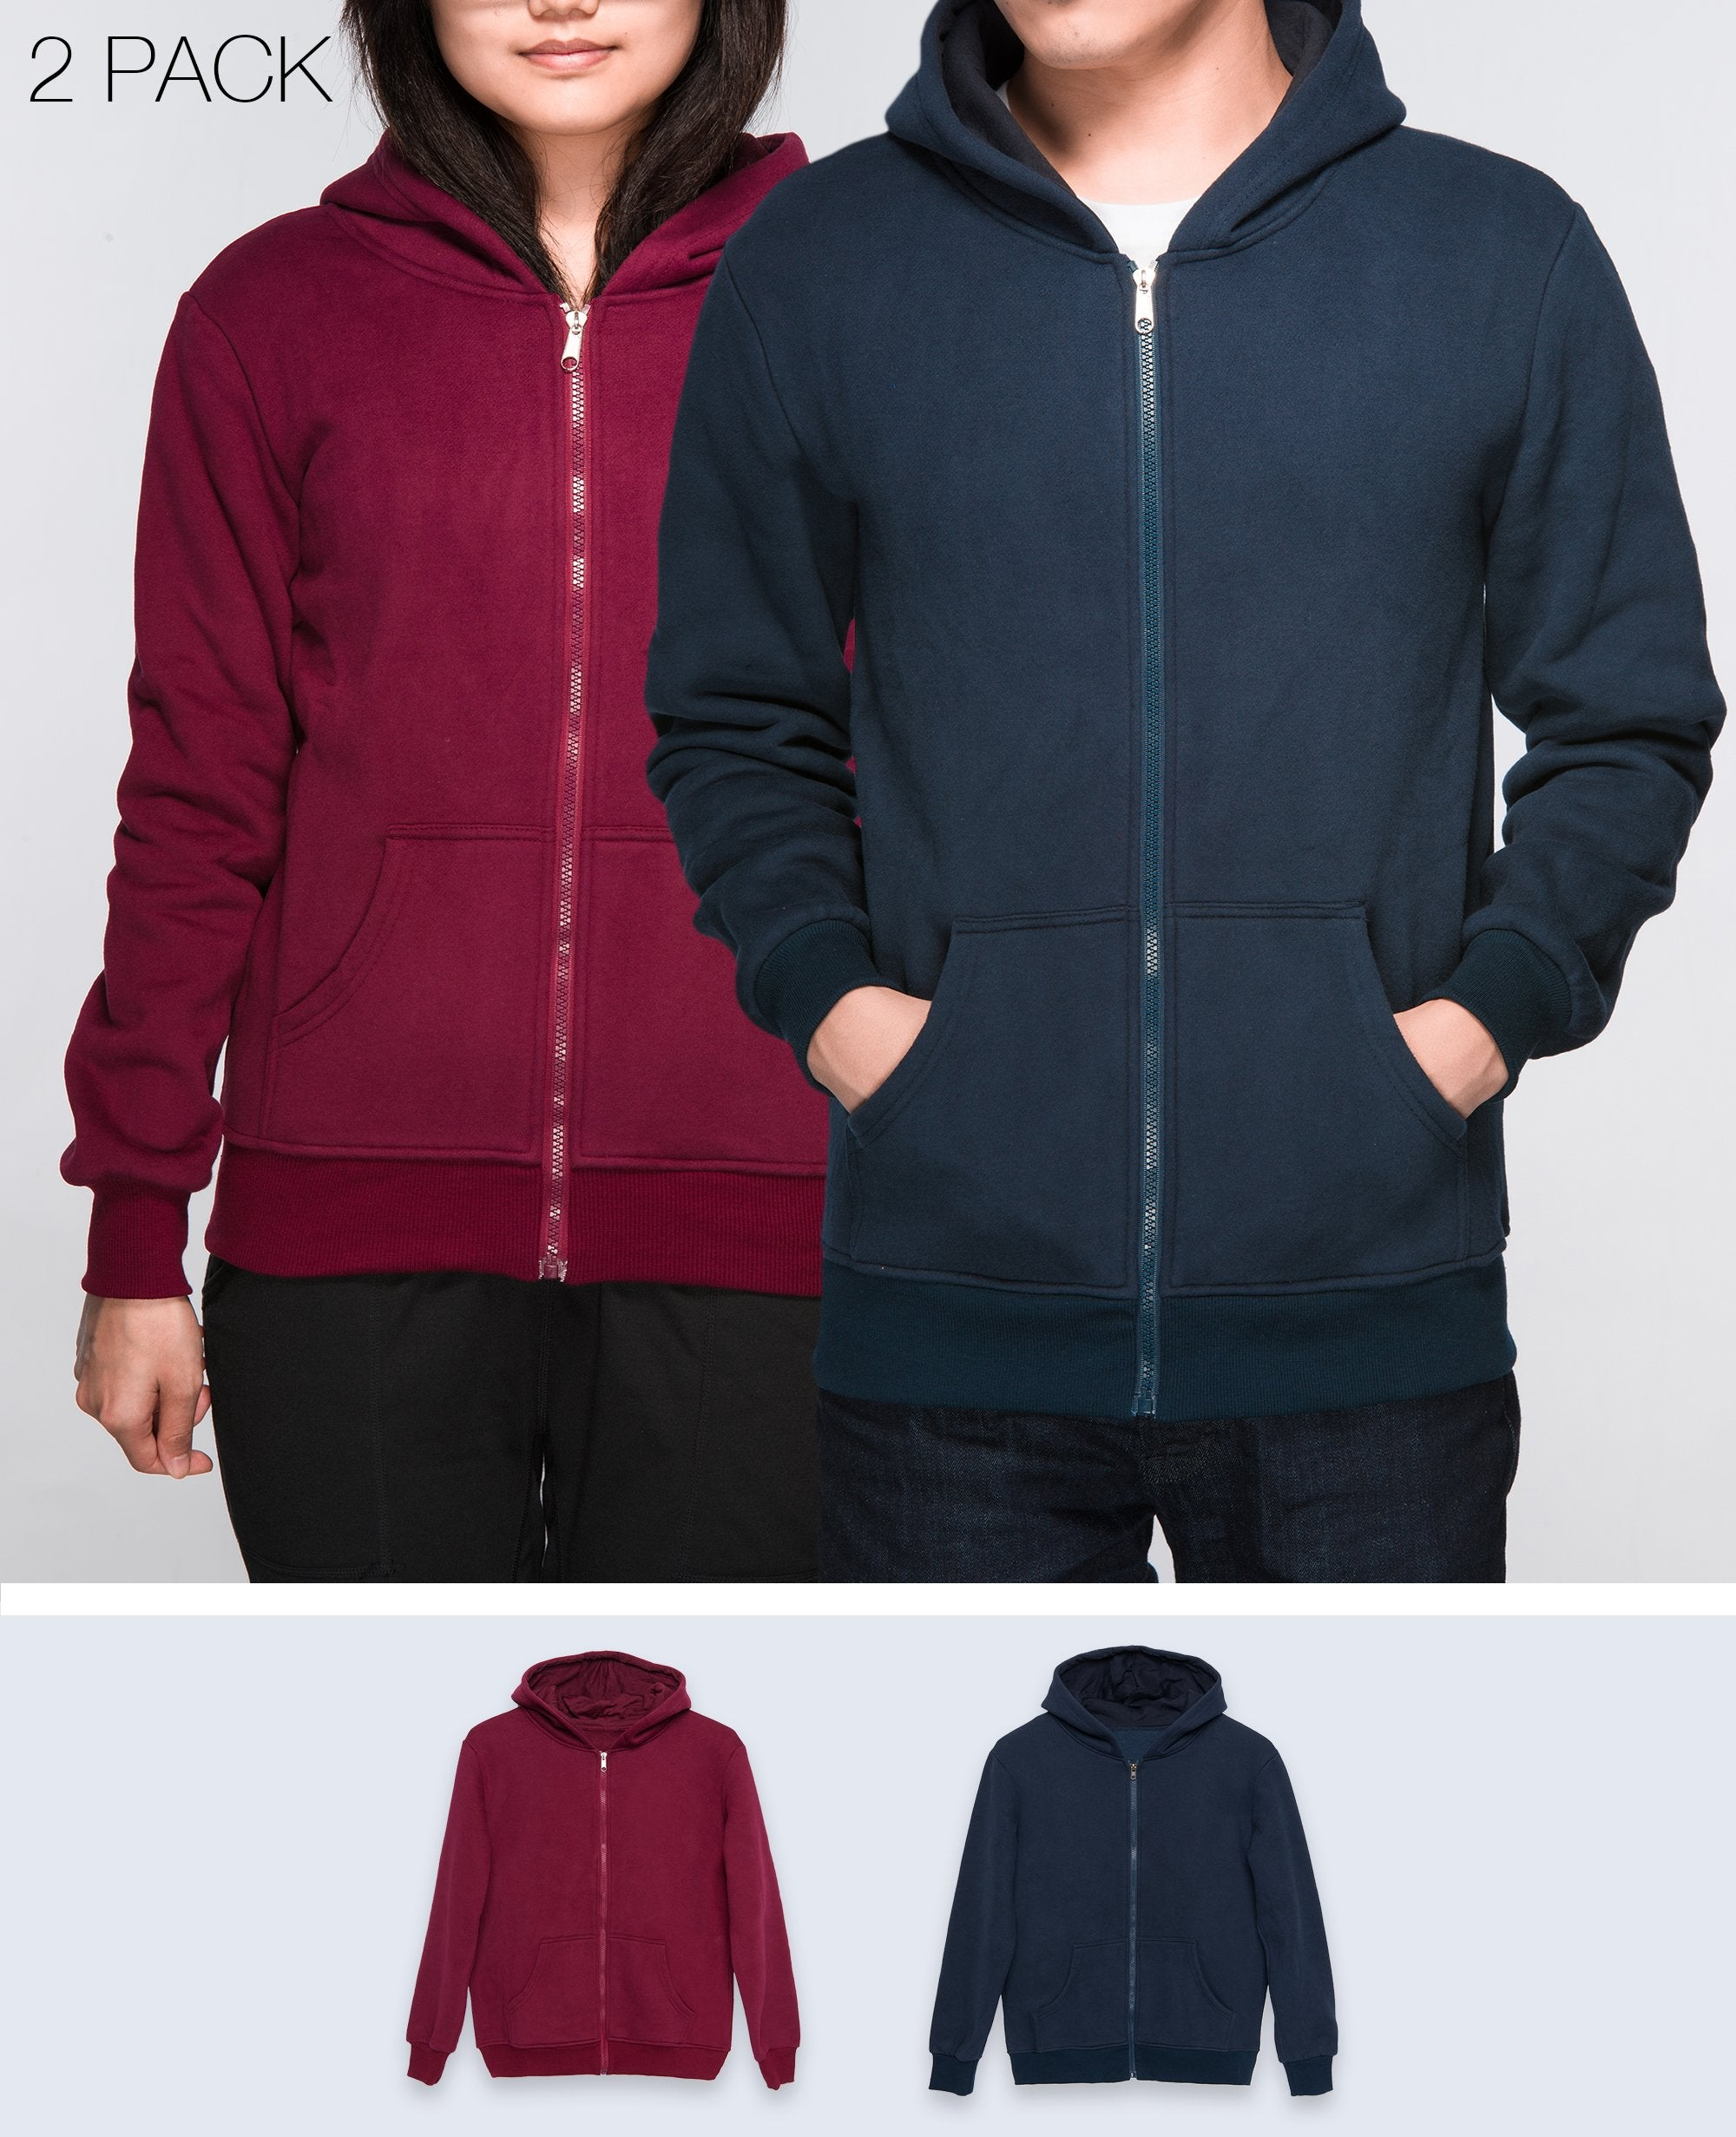 Unisex Basic Hoodies in Navy / Maroon 2 pack - Hoodies - BRANMA - BRANMA